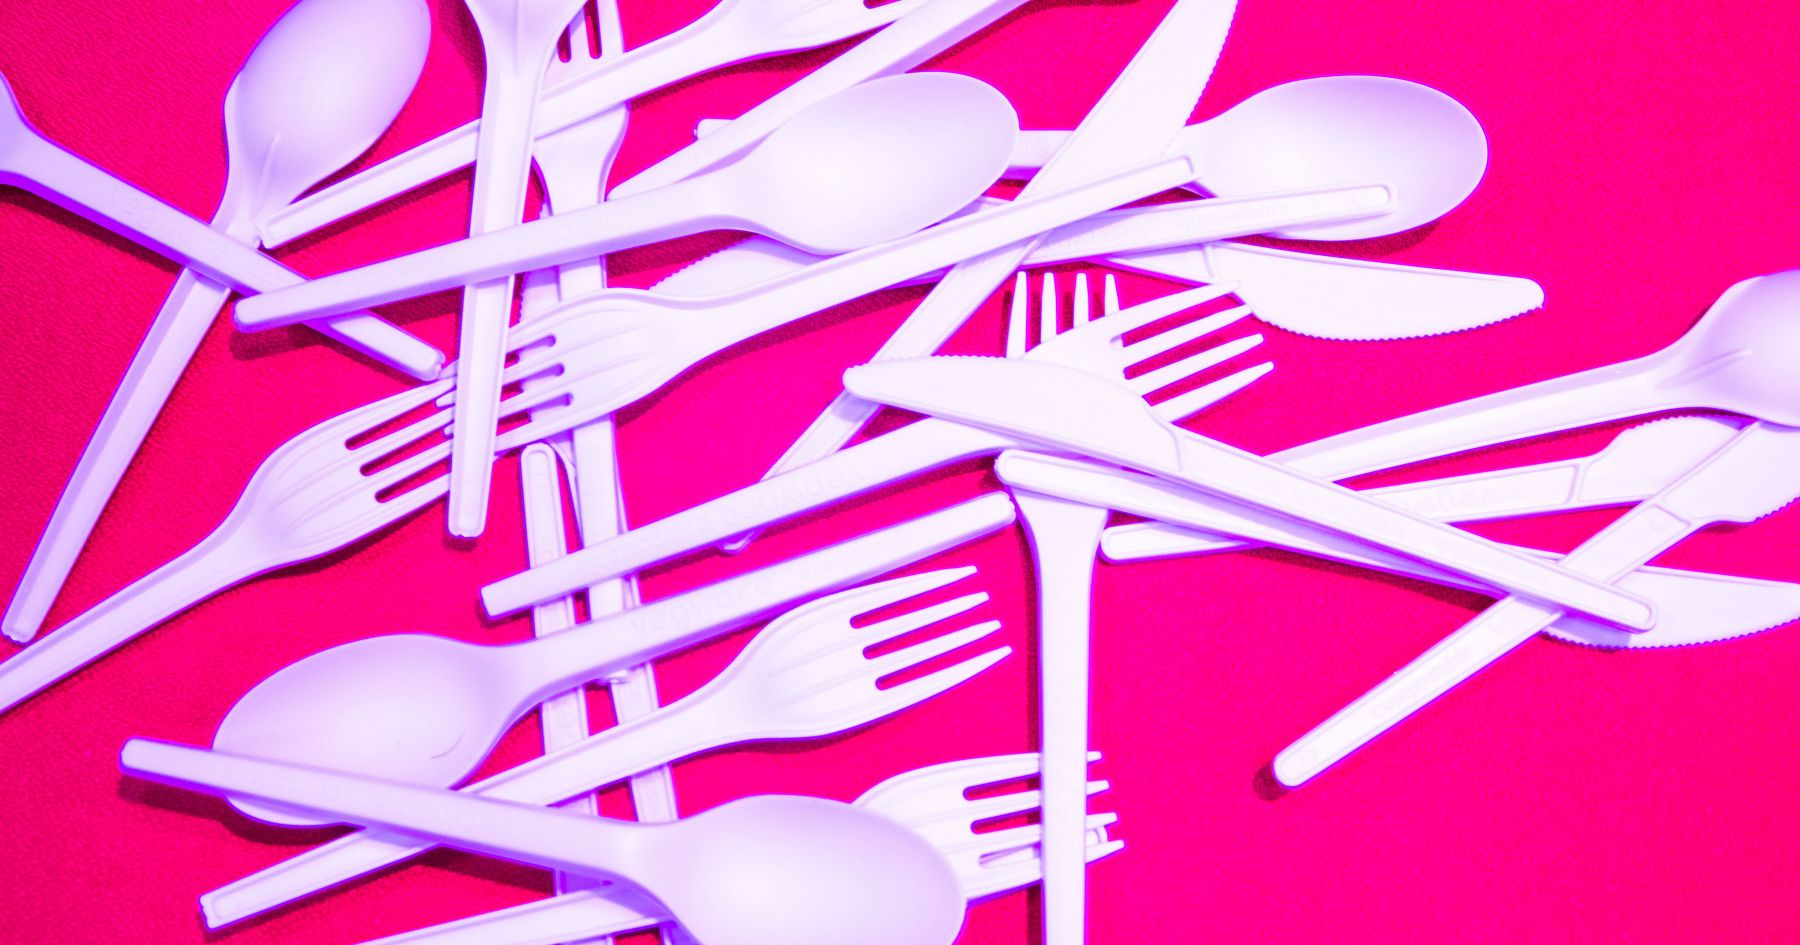 Photo of cutlery